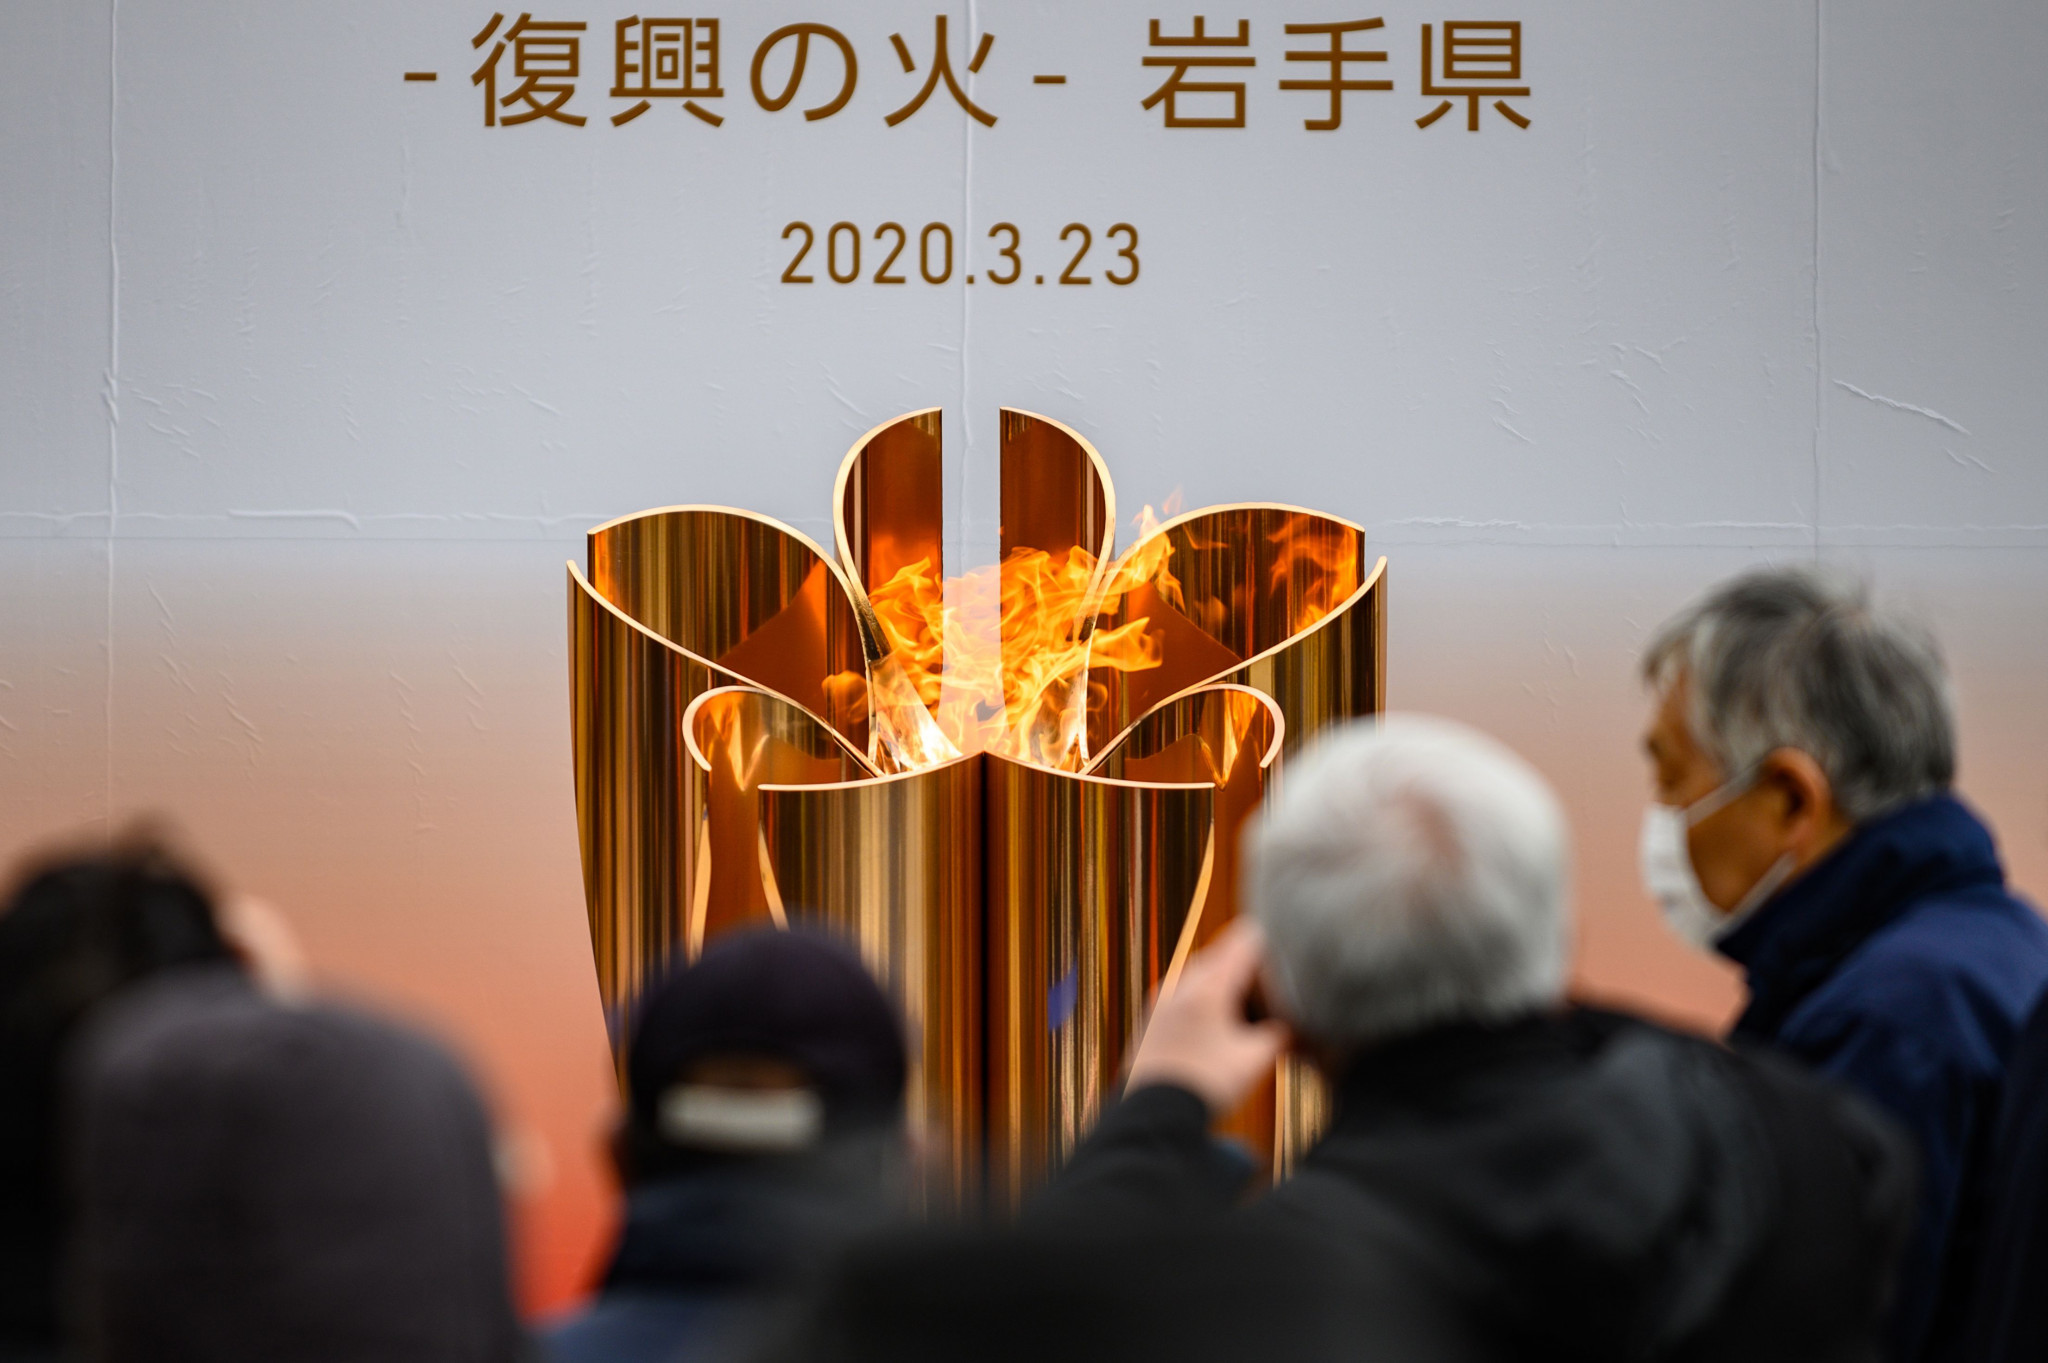 Decision on future of Tokyo 2020 Olympic Torch Relay to be made in coming days